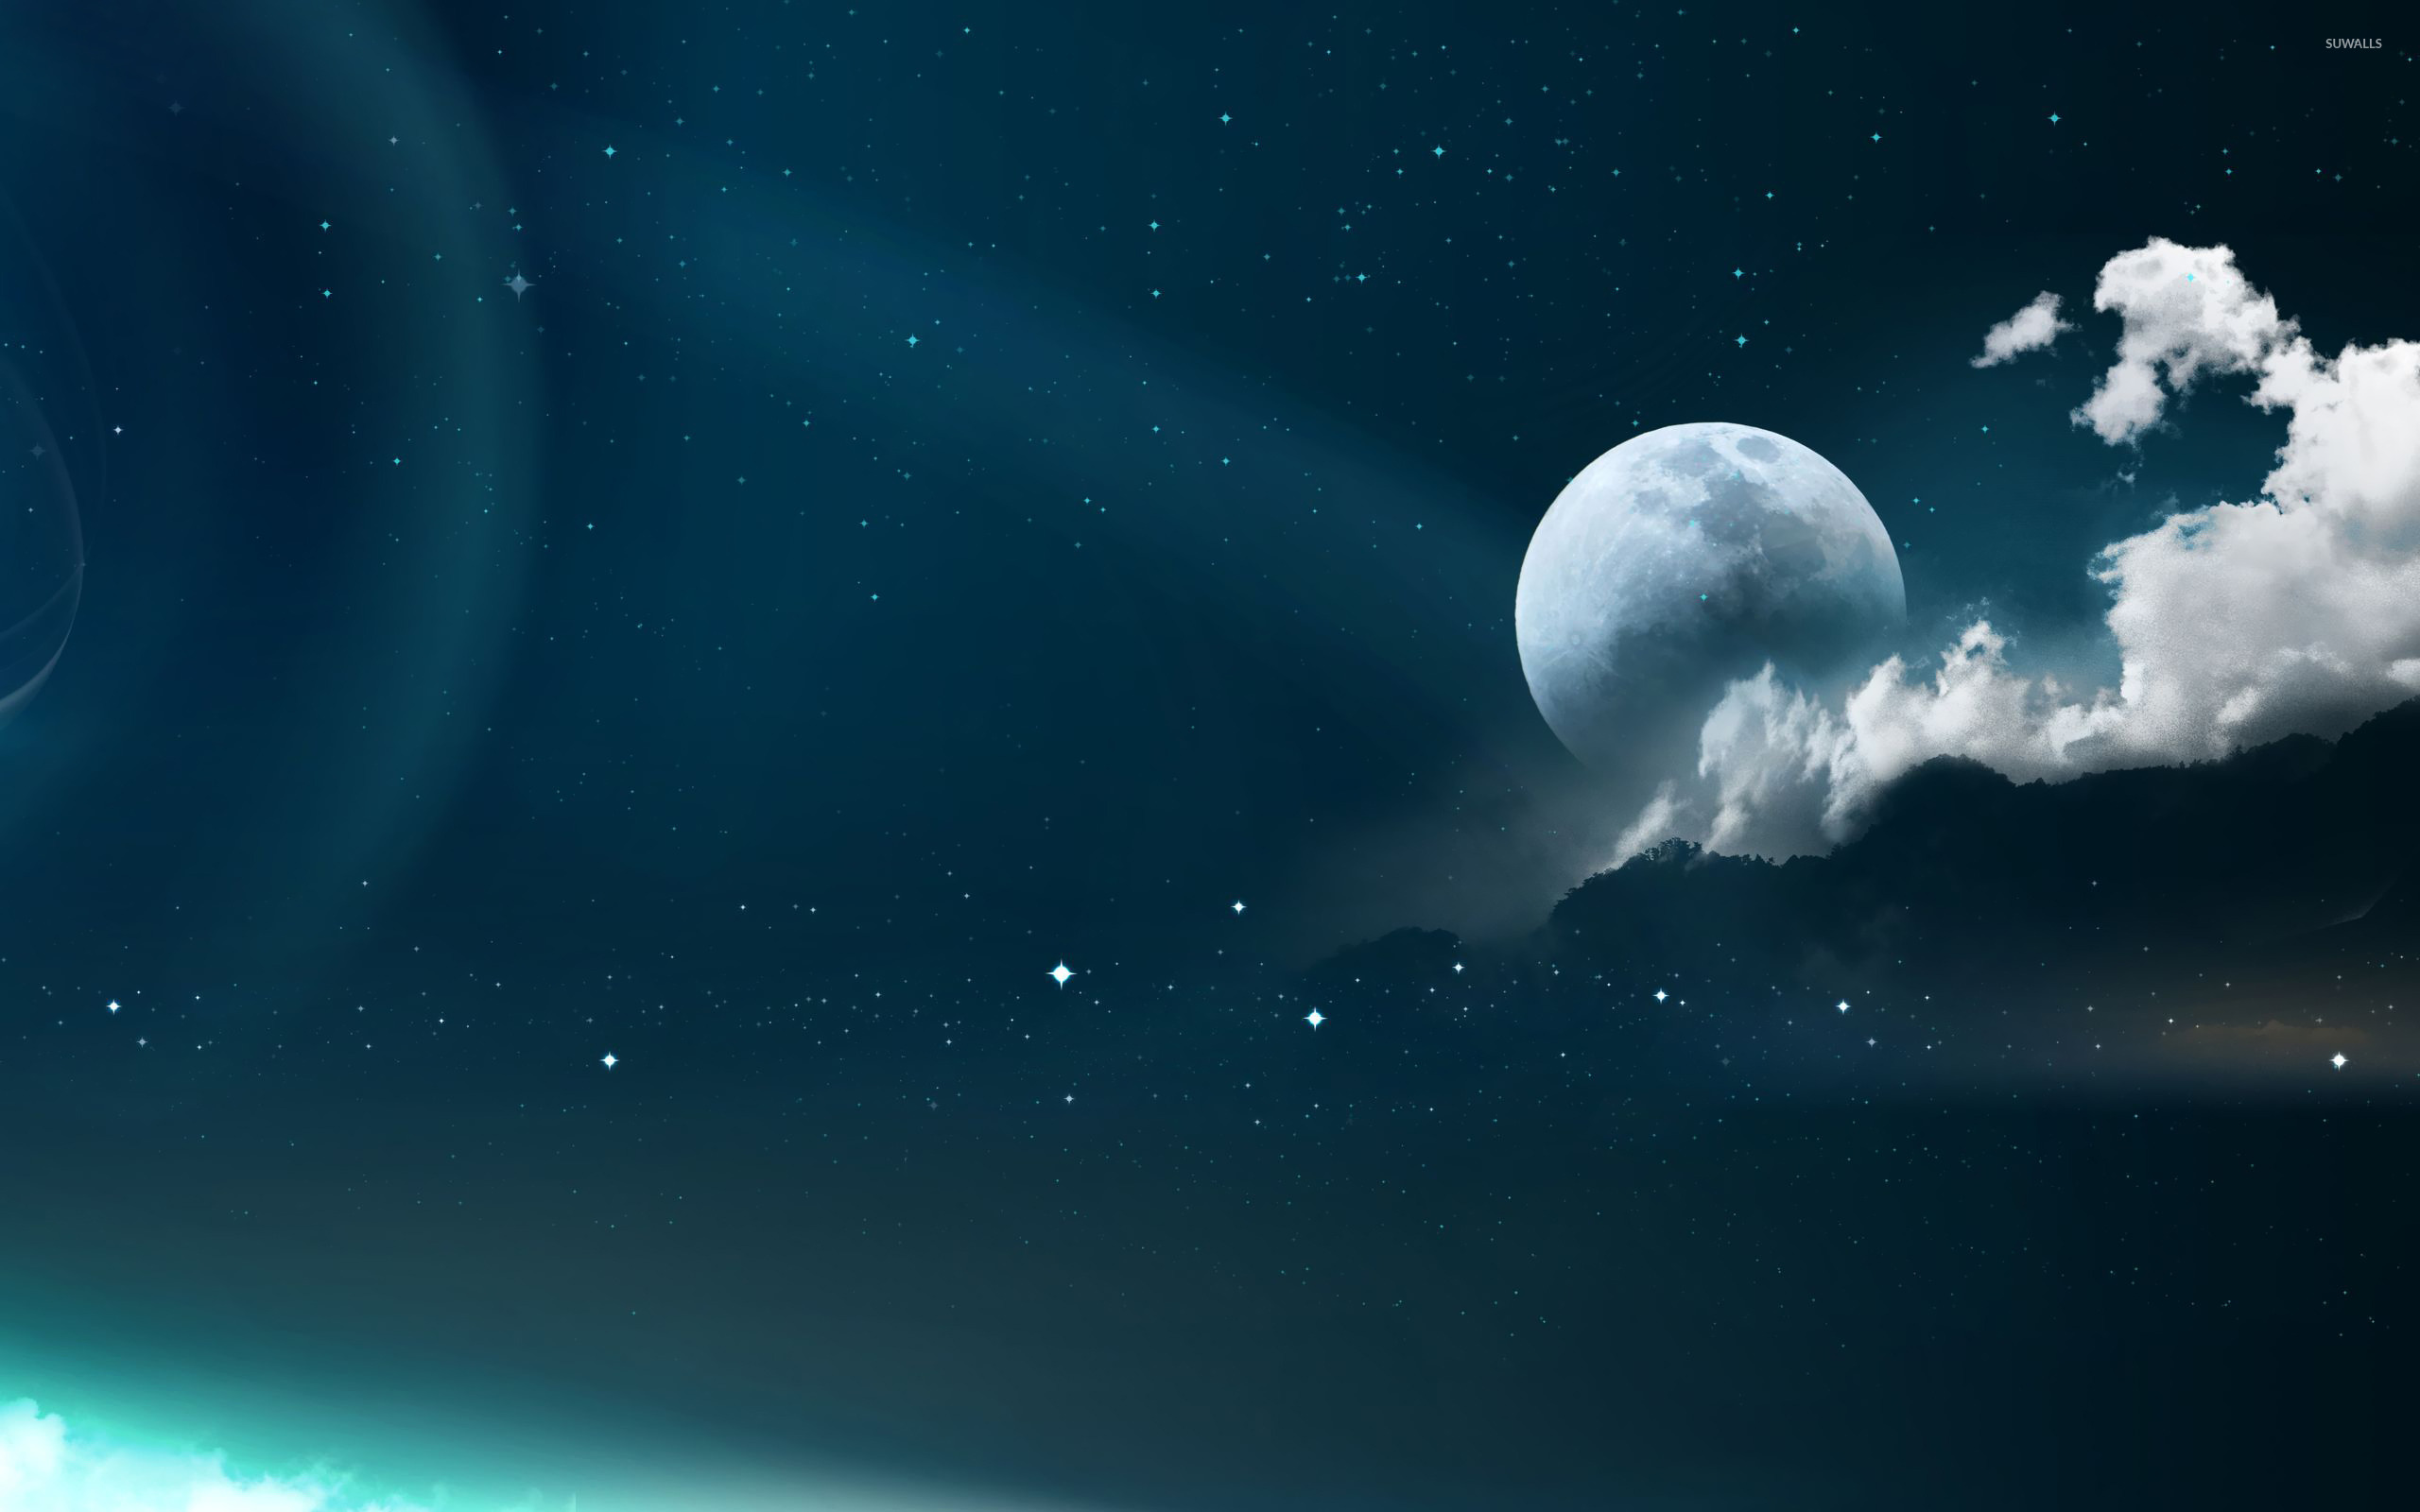 full moon wallpaper - space wallpapers - #22077